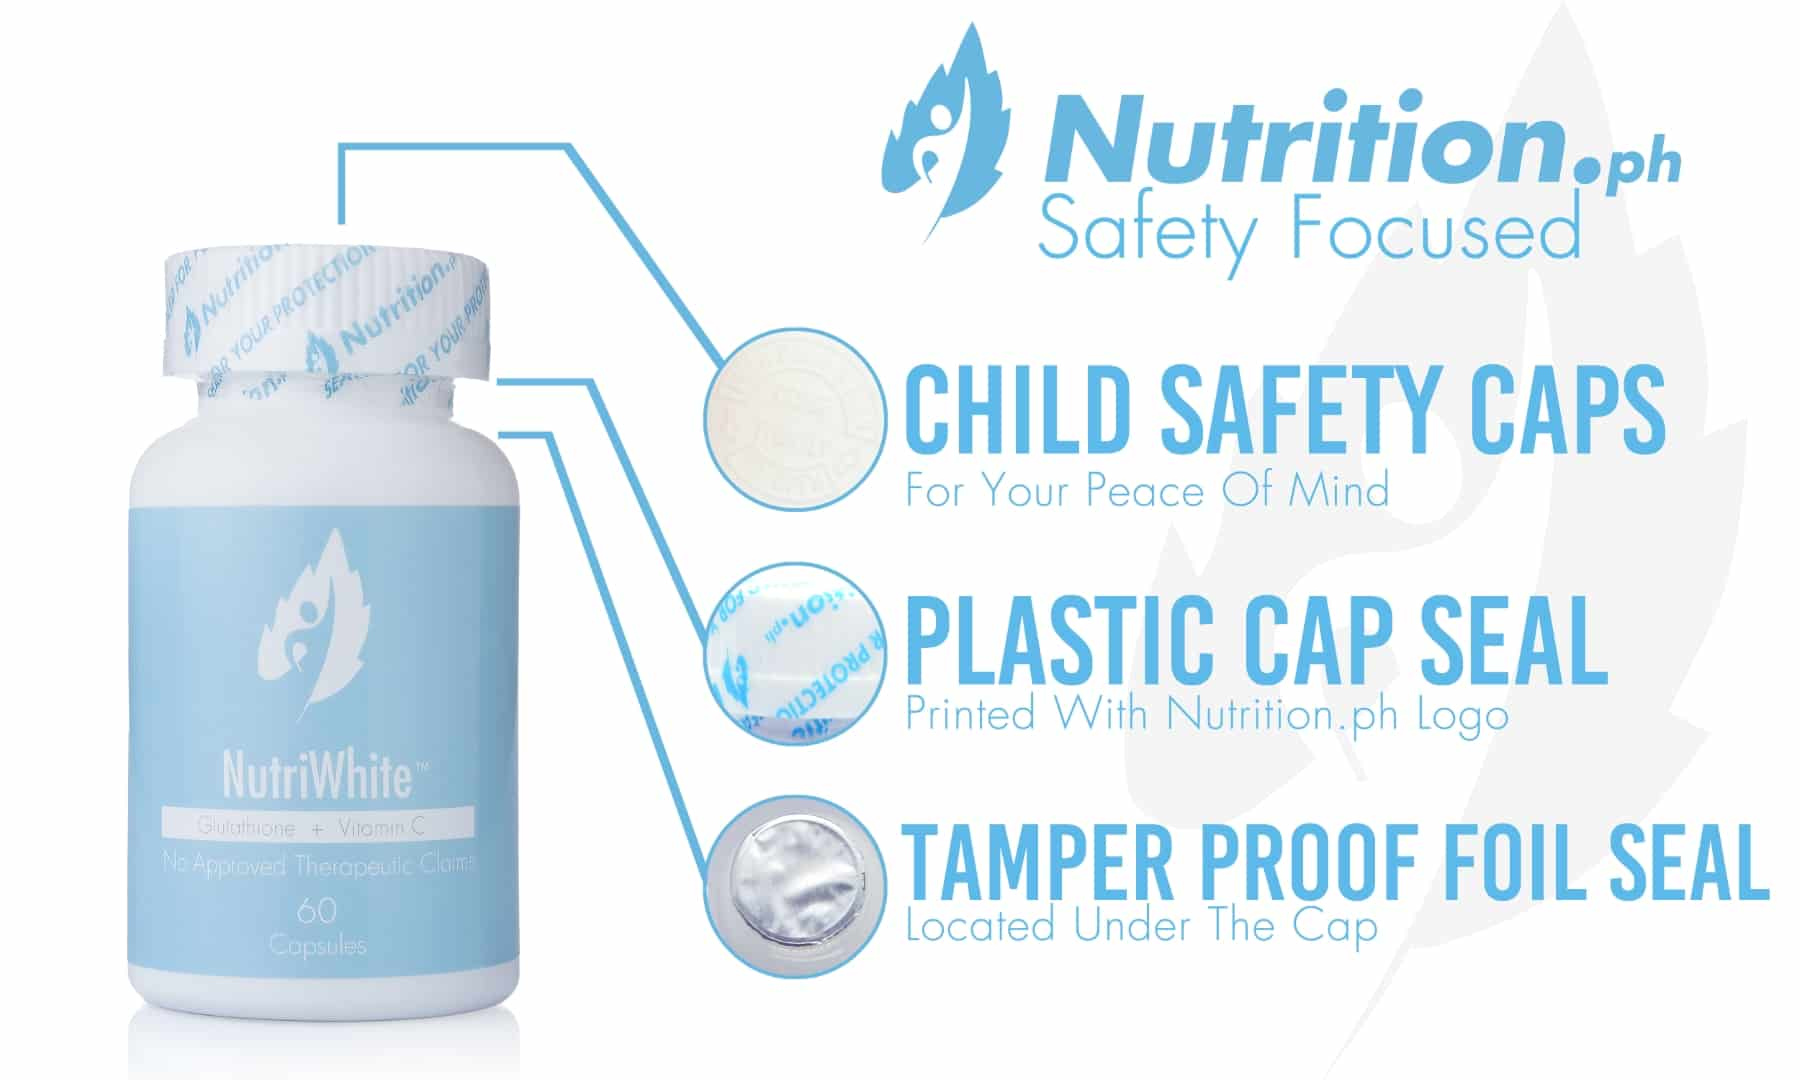 safety focused NutriWhite